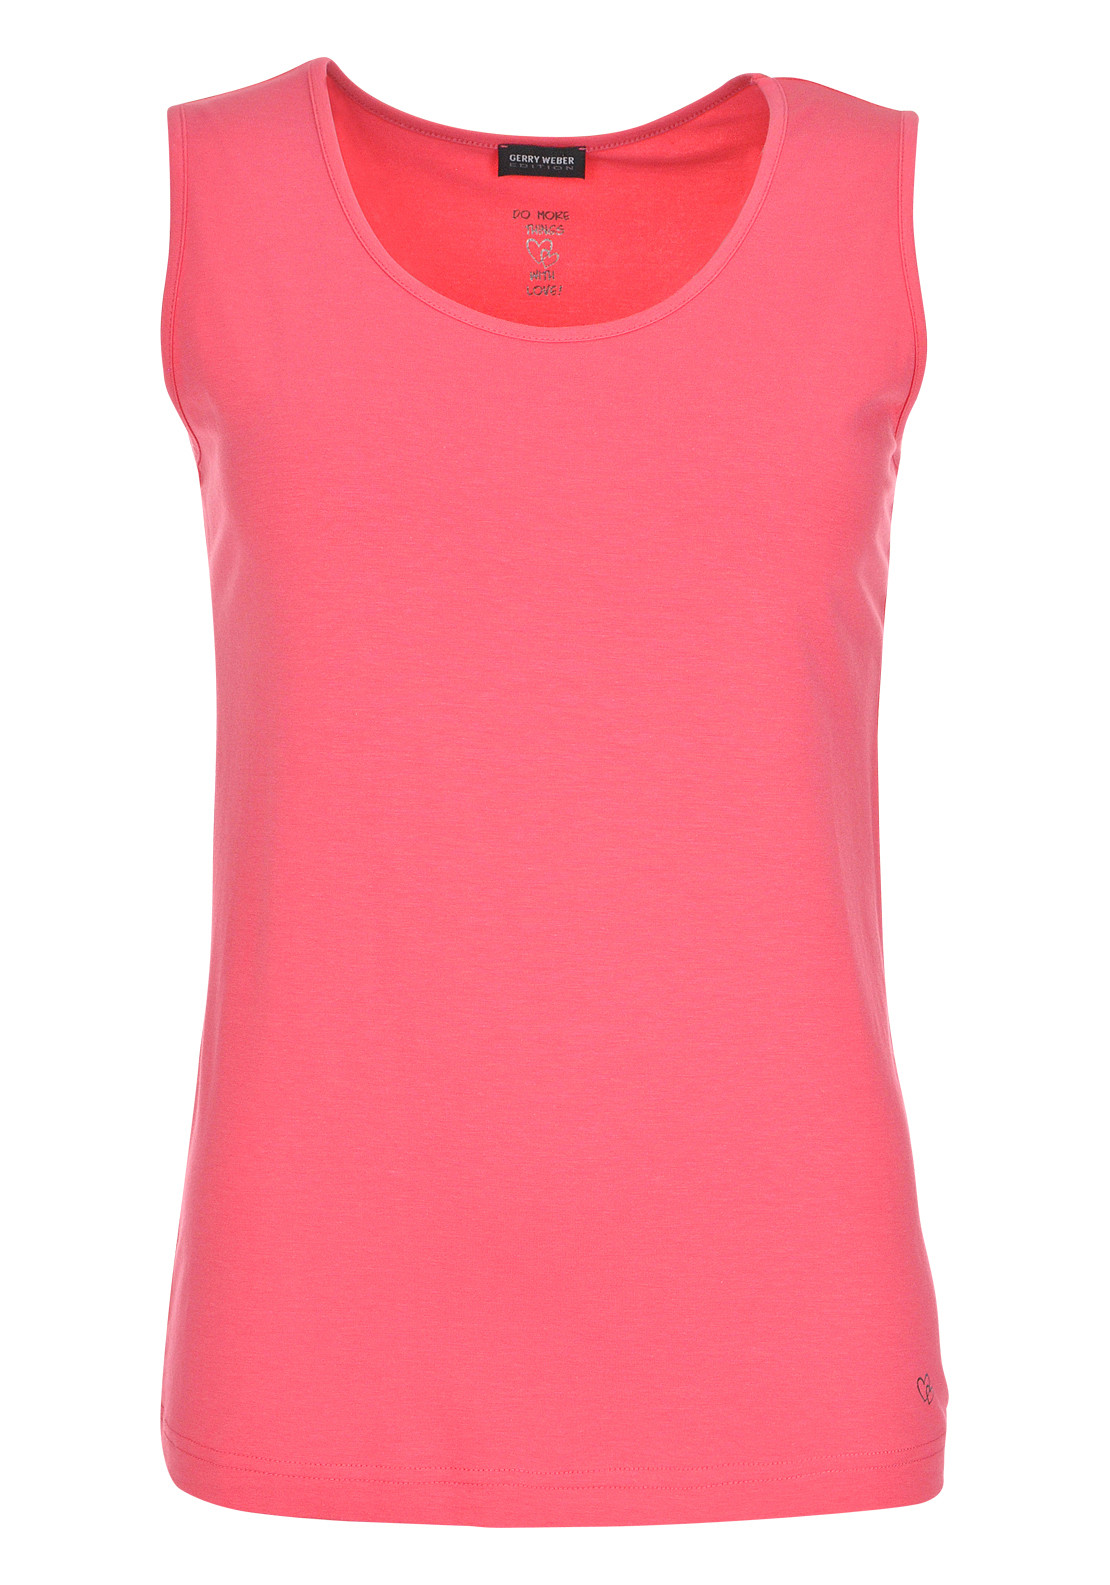 Gerry Weber Sleeveless Vest Top, Coral